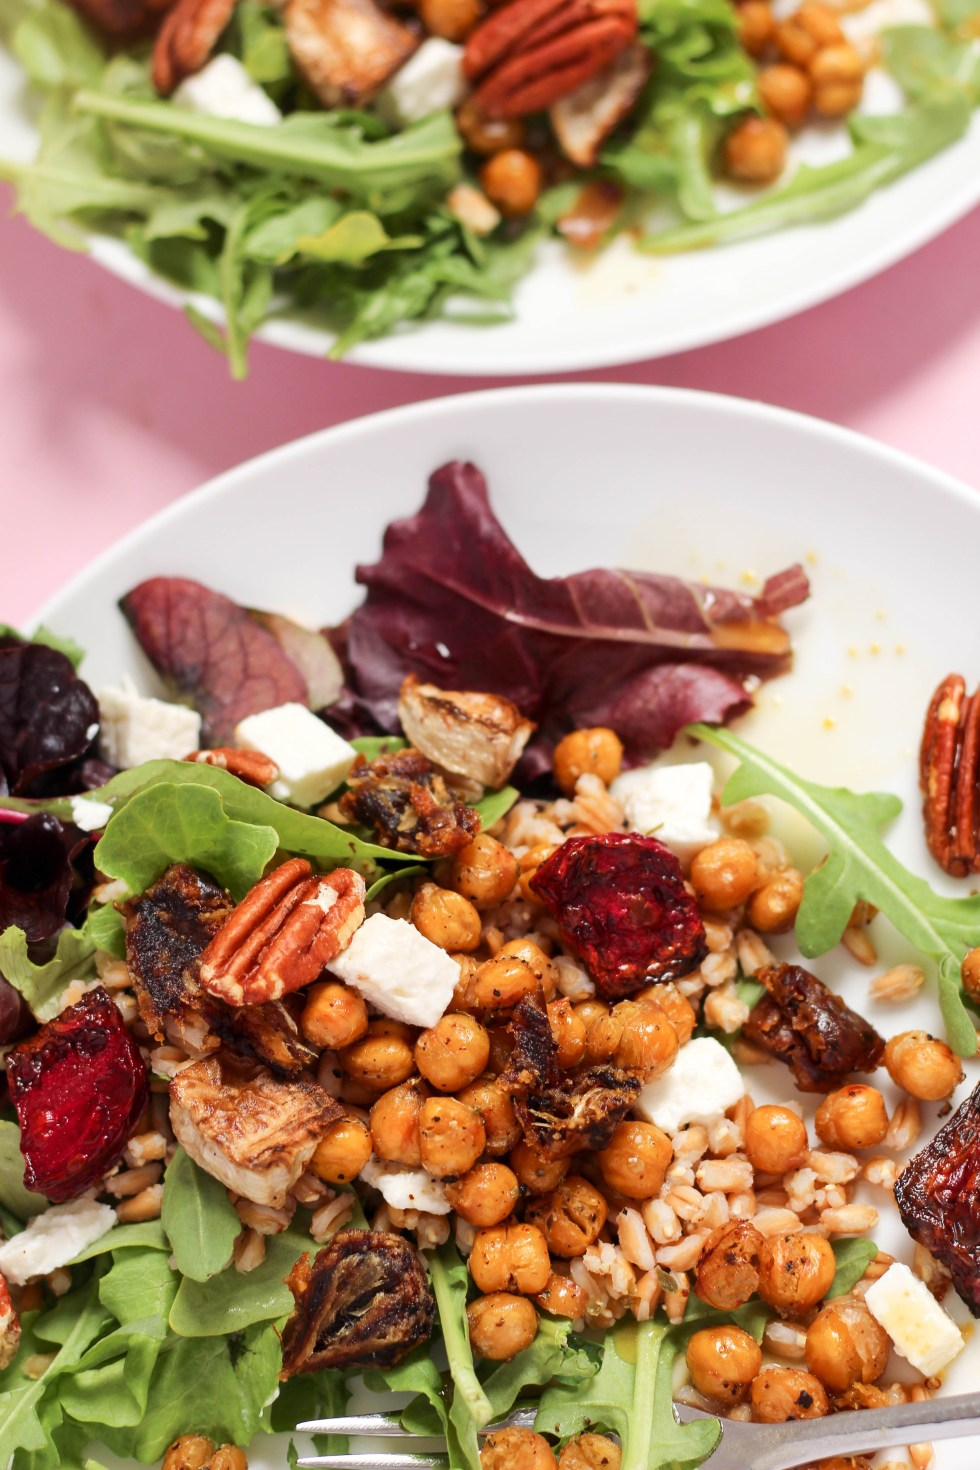 Hearty Farro Beet Salad with roasted turnips and beets, crispy chickpeas, feta, chopped dates, and arugula // POP KITCHEN